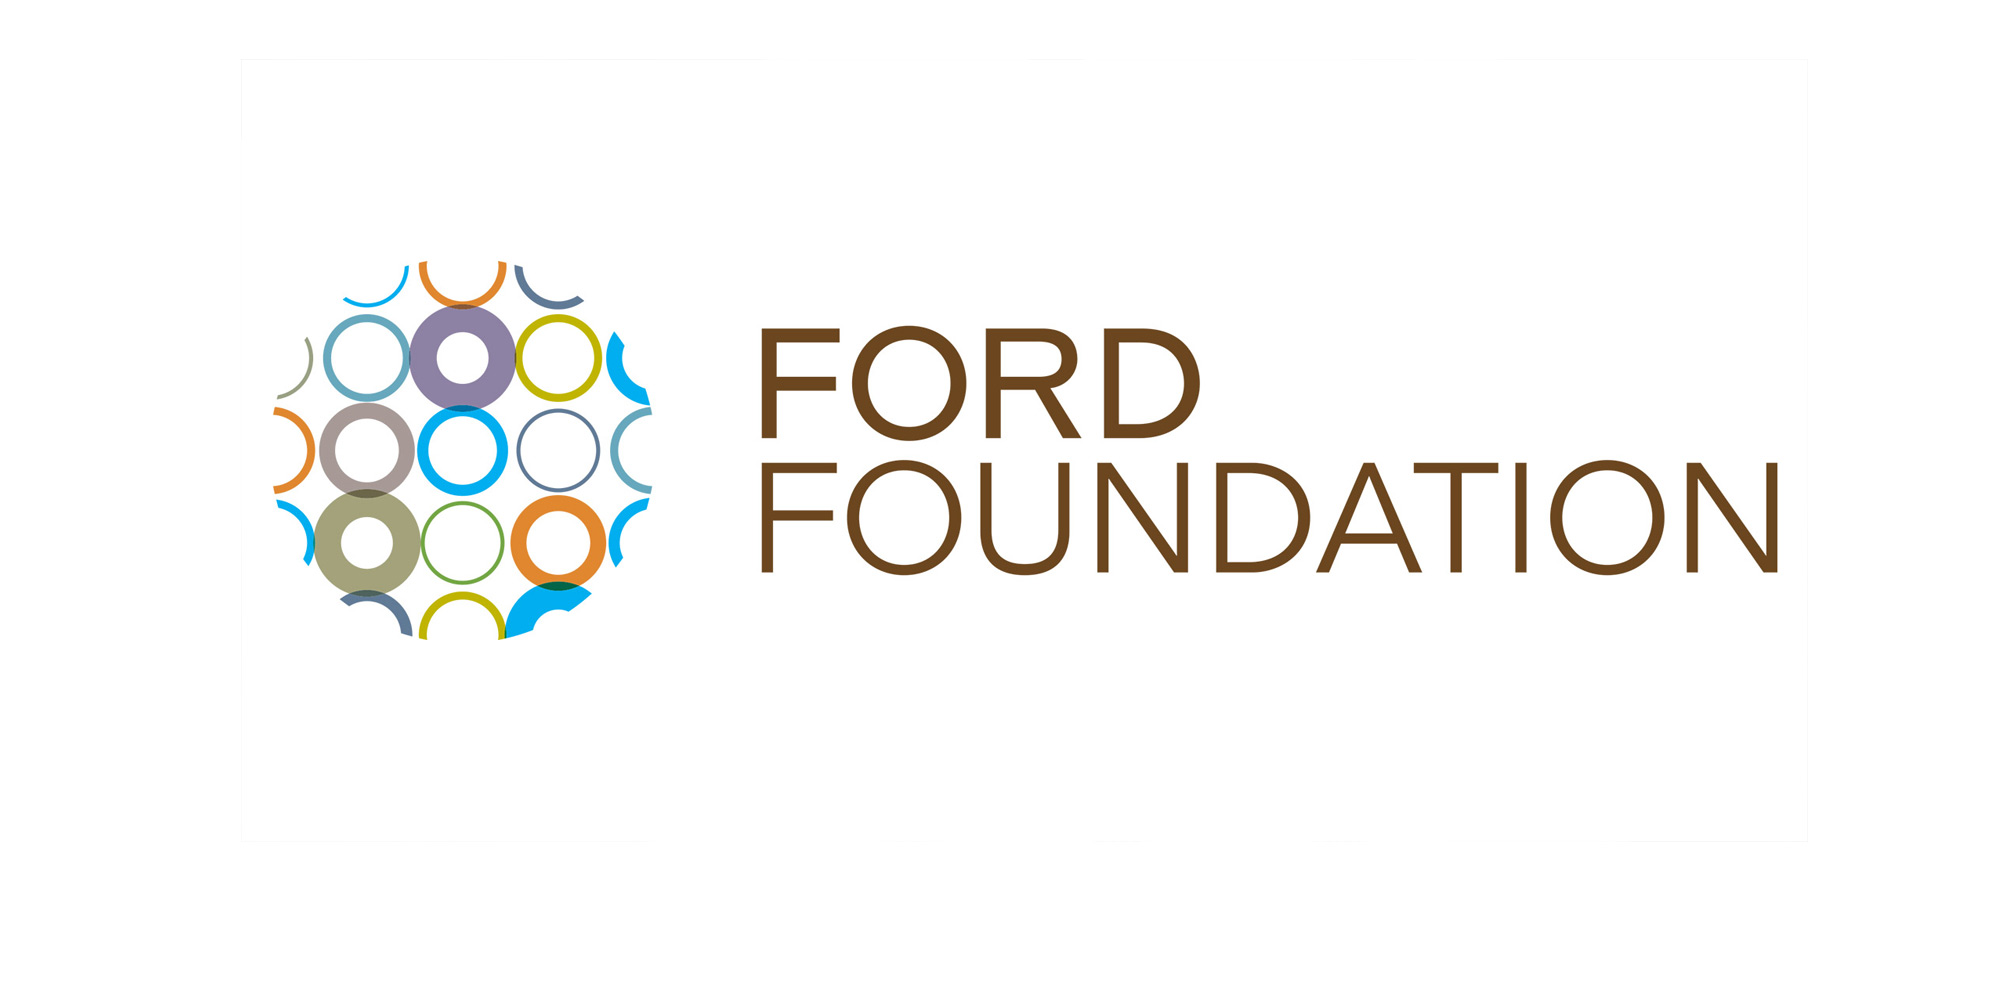 Ford Foundation.jpg